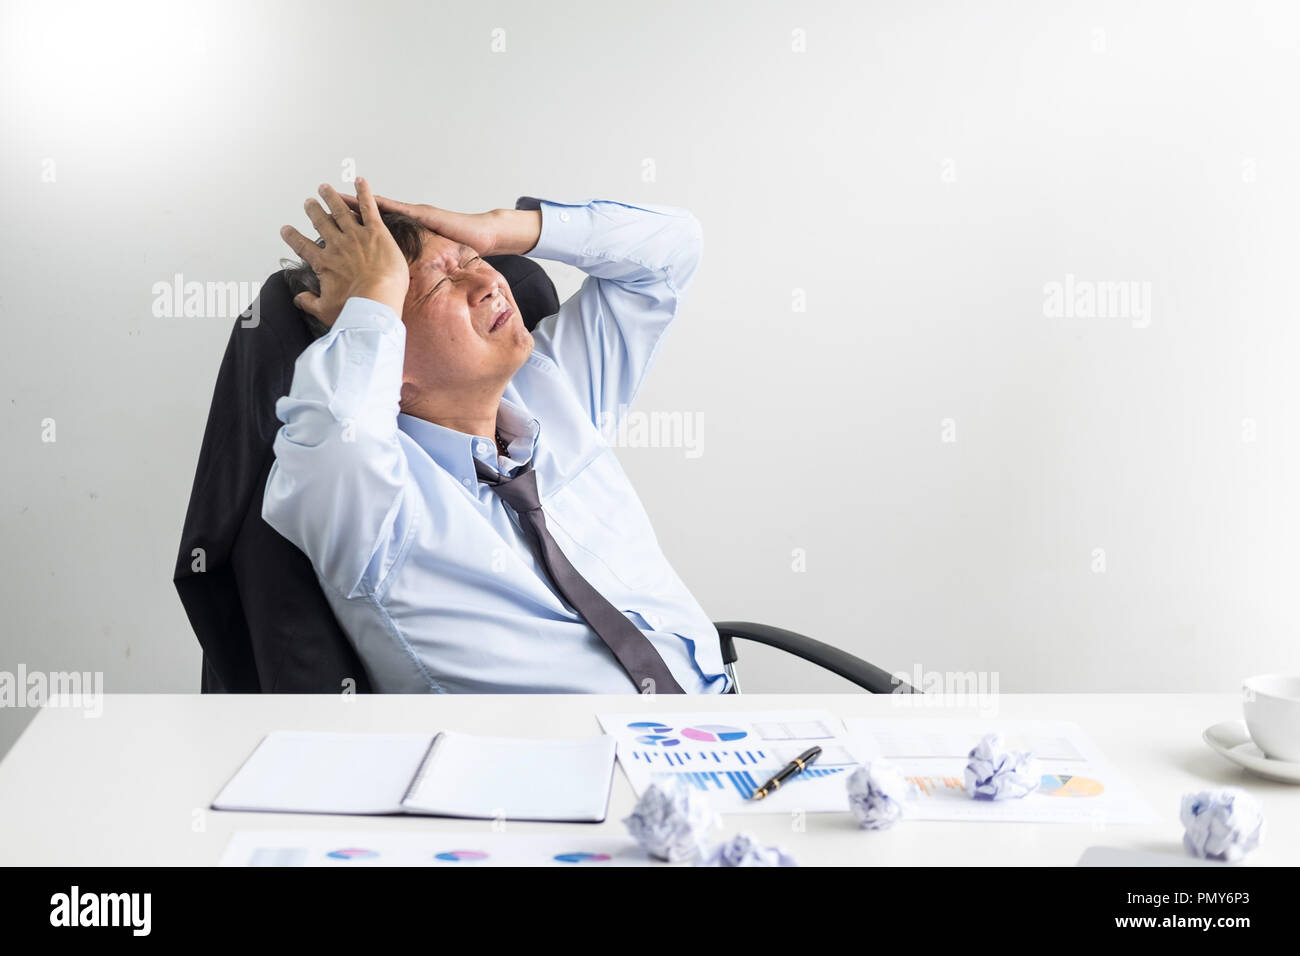 Depressed failure and tired businessman late sad and solving problem in office. in meeting room. stressed and worried at work crisis concept. - Stock Image